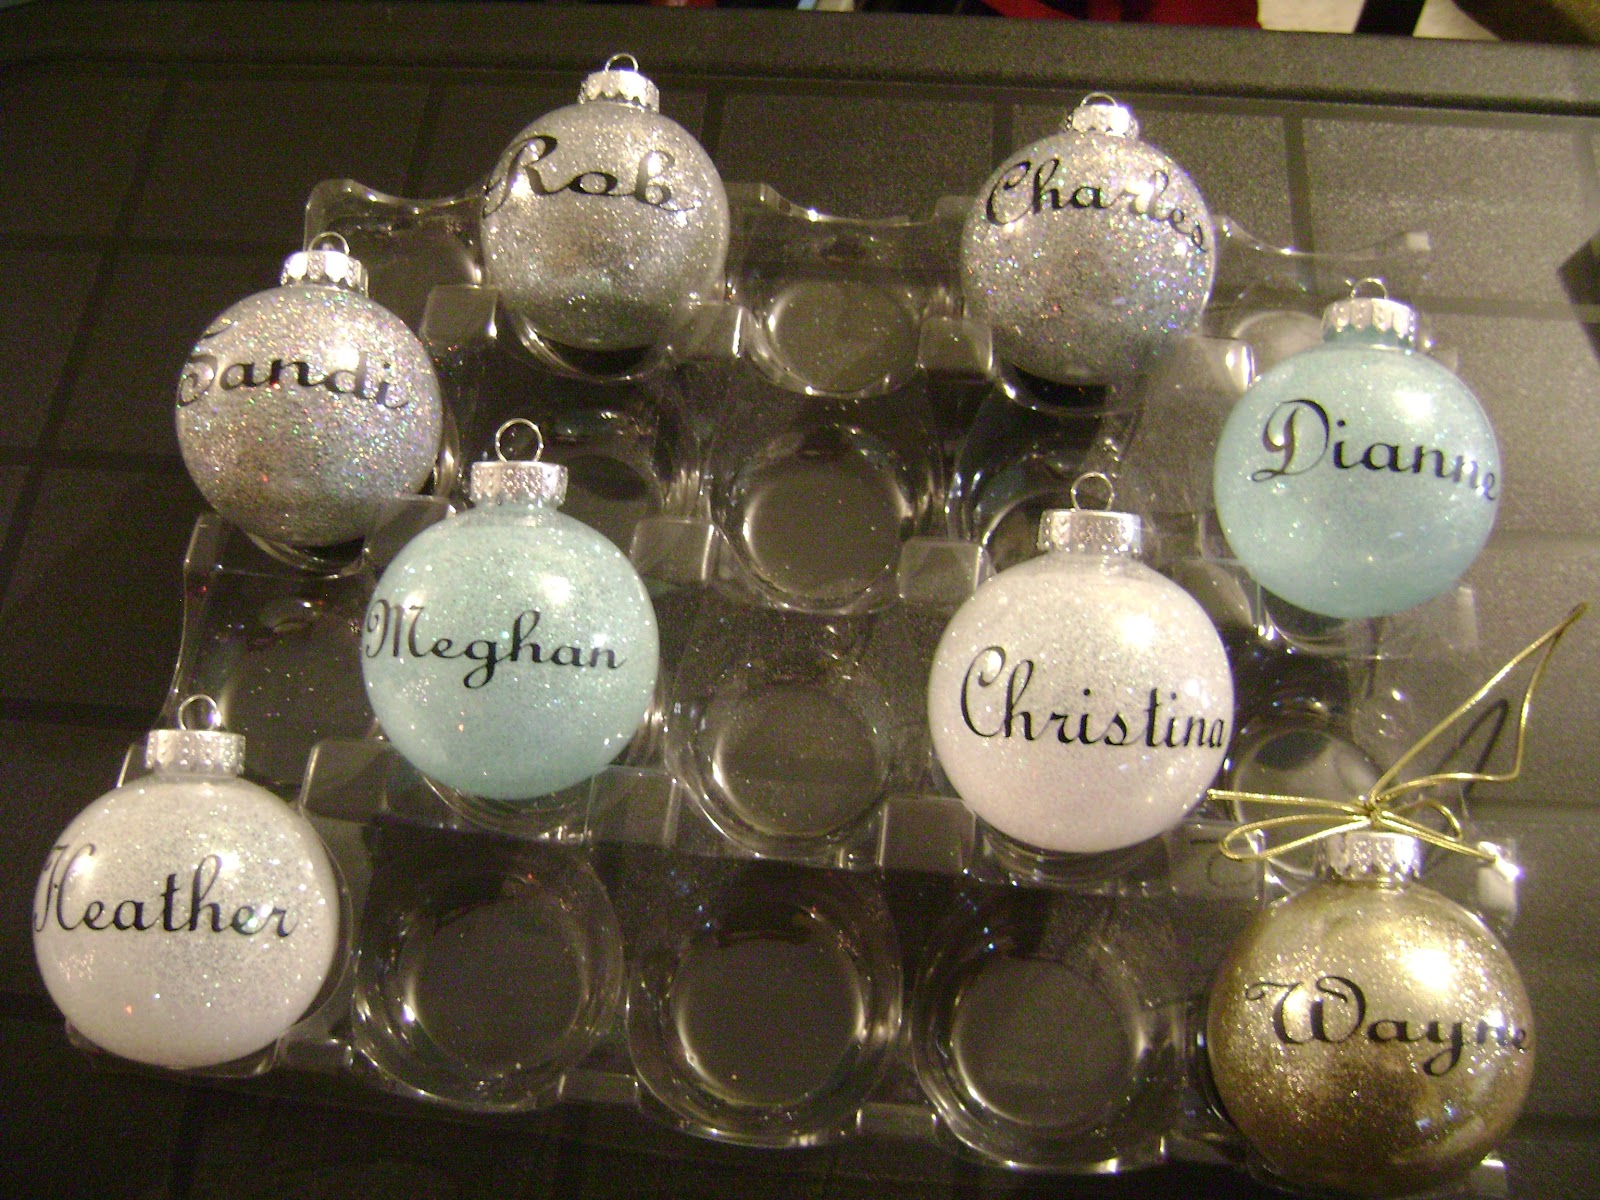 vinyl expression on glitter Christmas ornaments